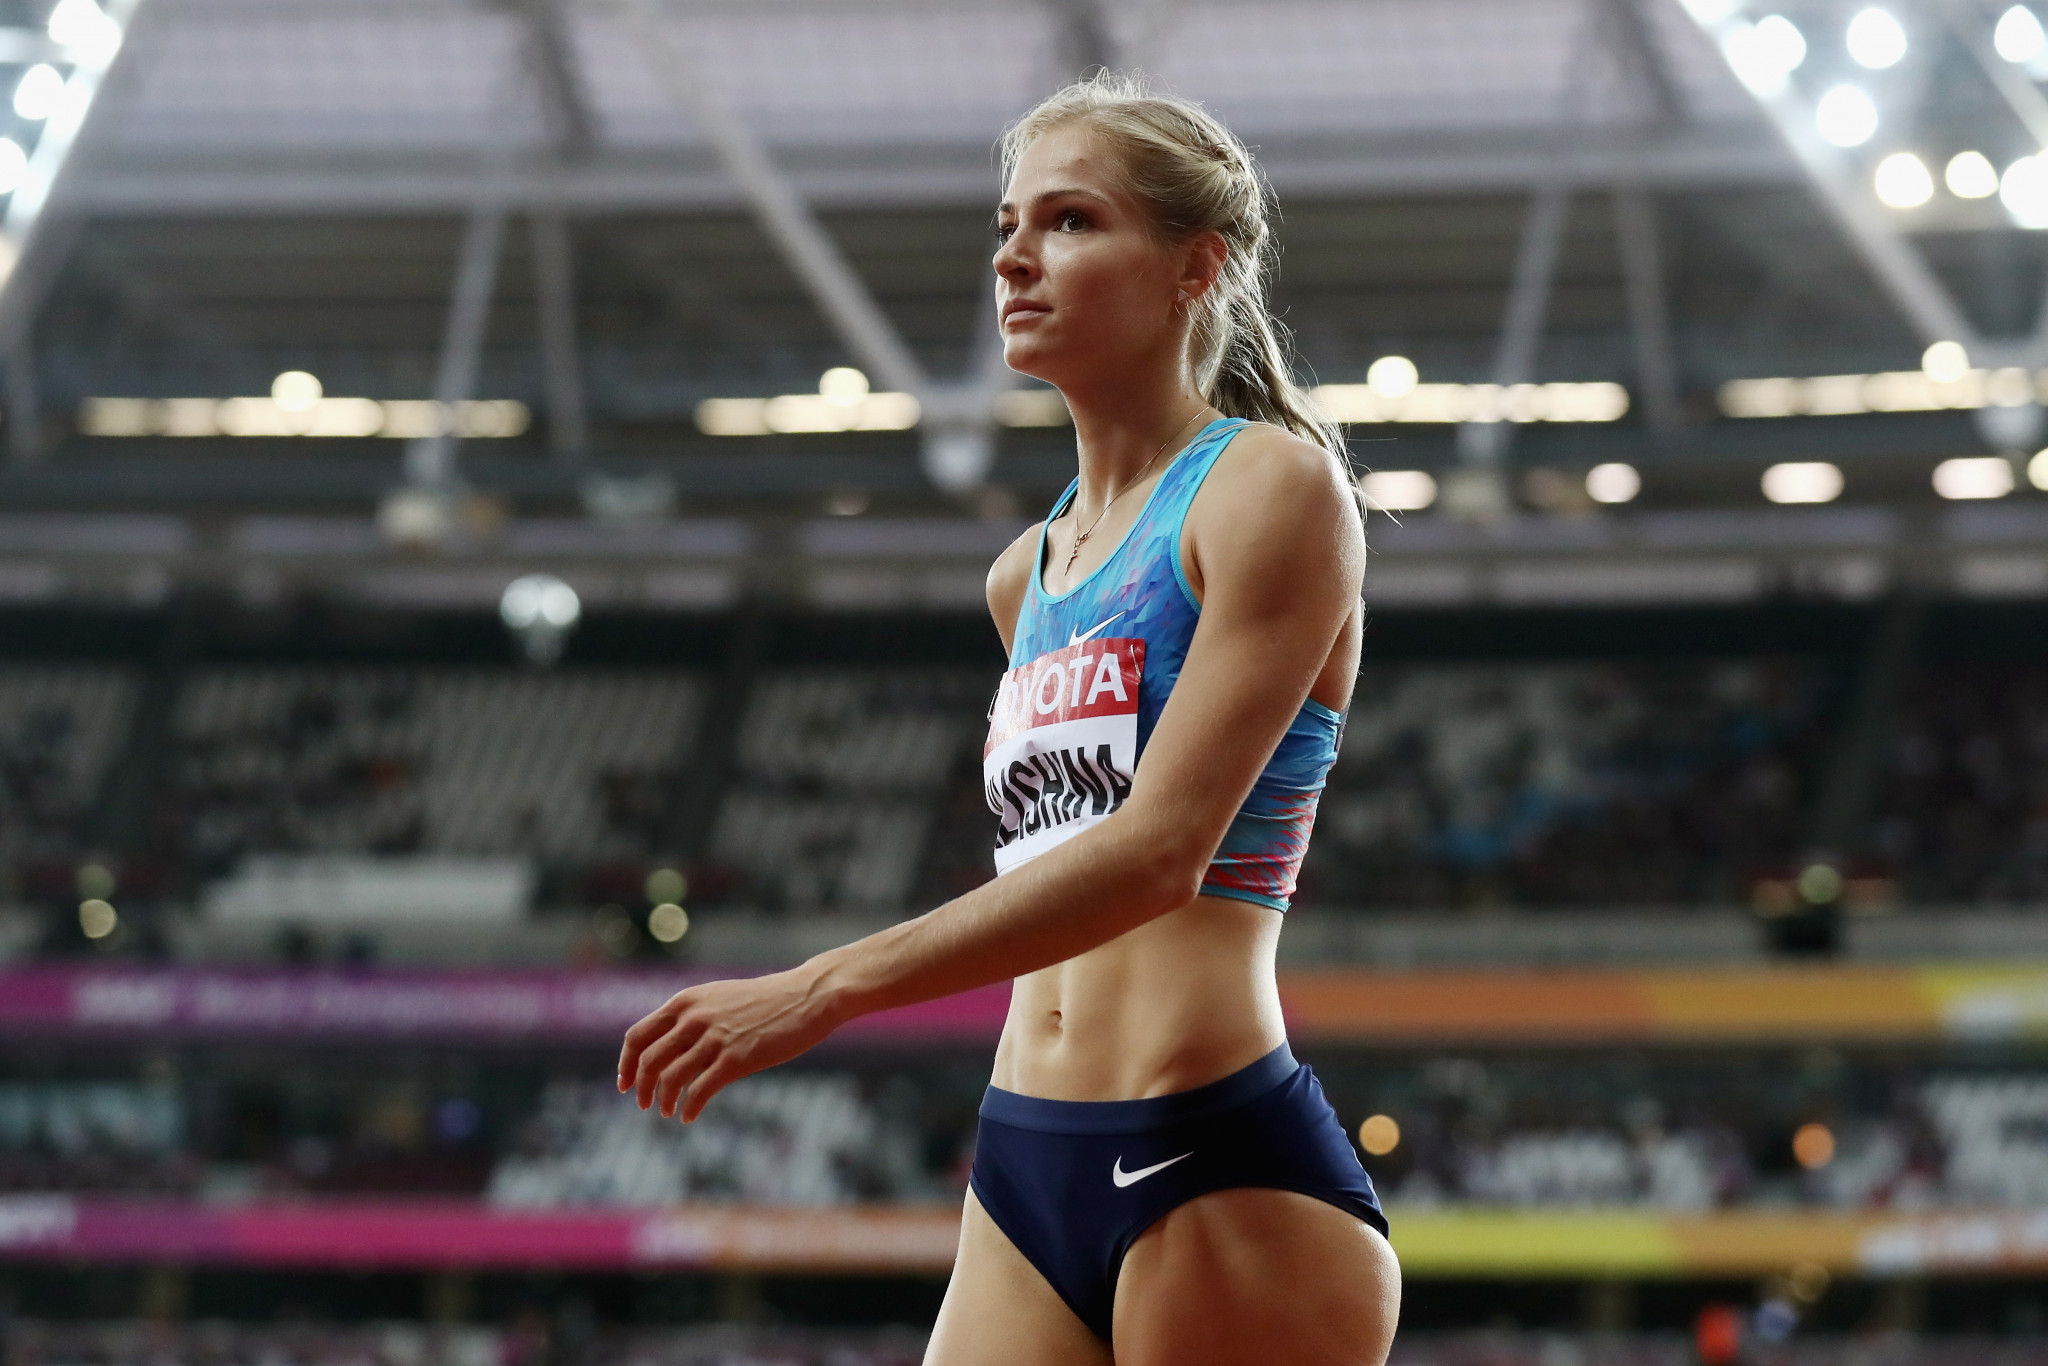 Long jumper Daria Klishina has been the only Russian athlete to represent the country in international competition over the past four years ©Getty Images